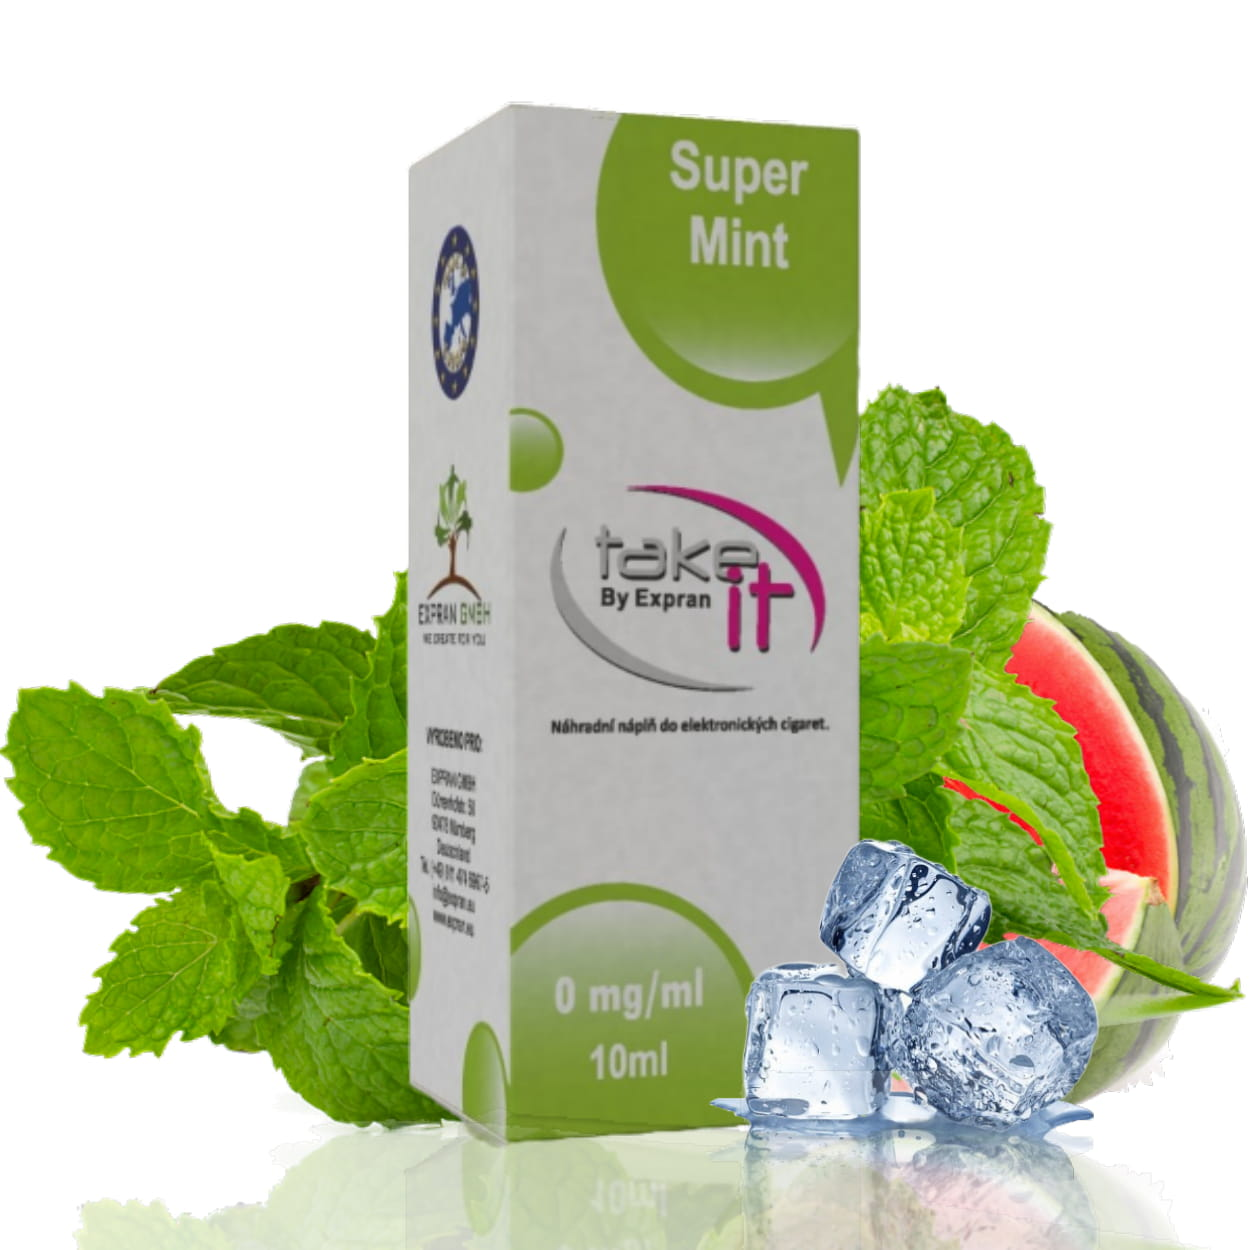 10 ml Take It - Super Mint 6 mg/ml